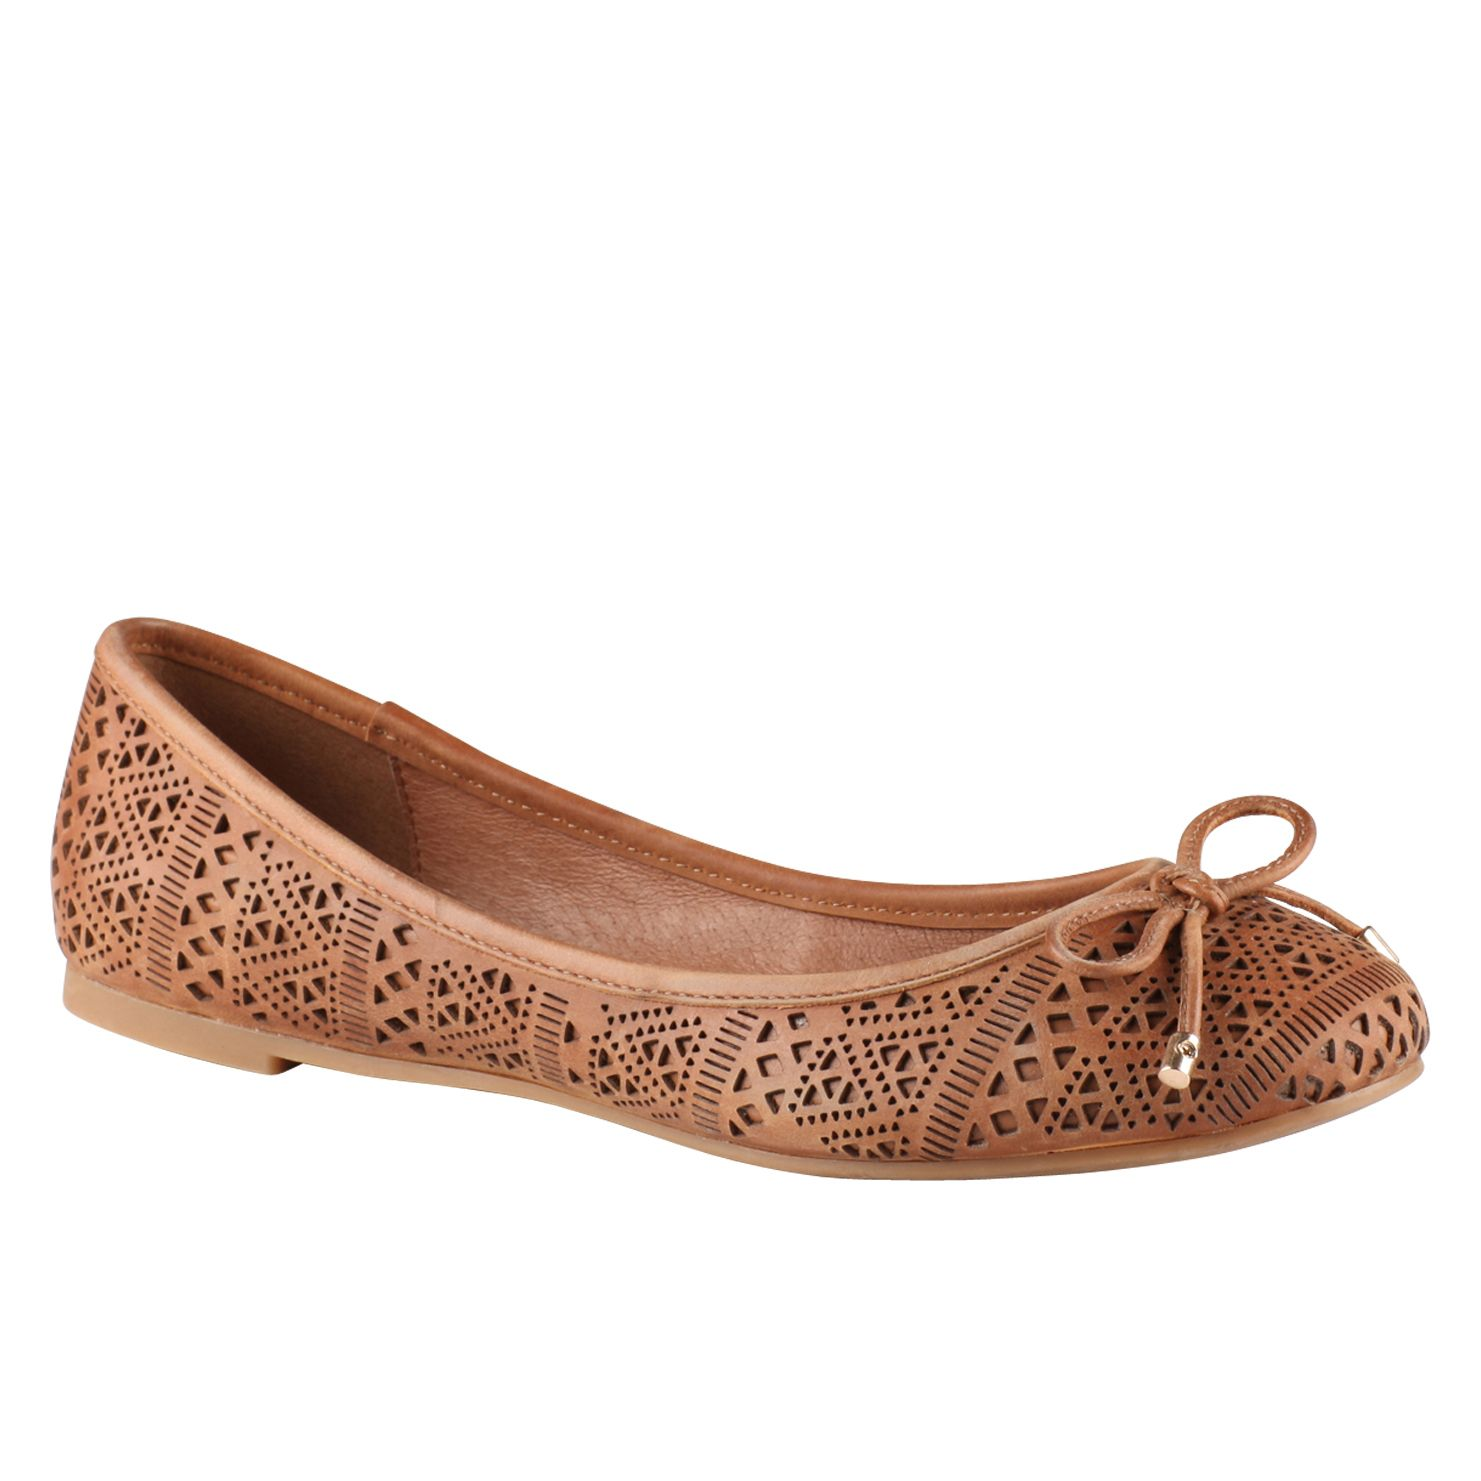 Qaolia laser cut ballerina shoes